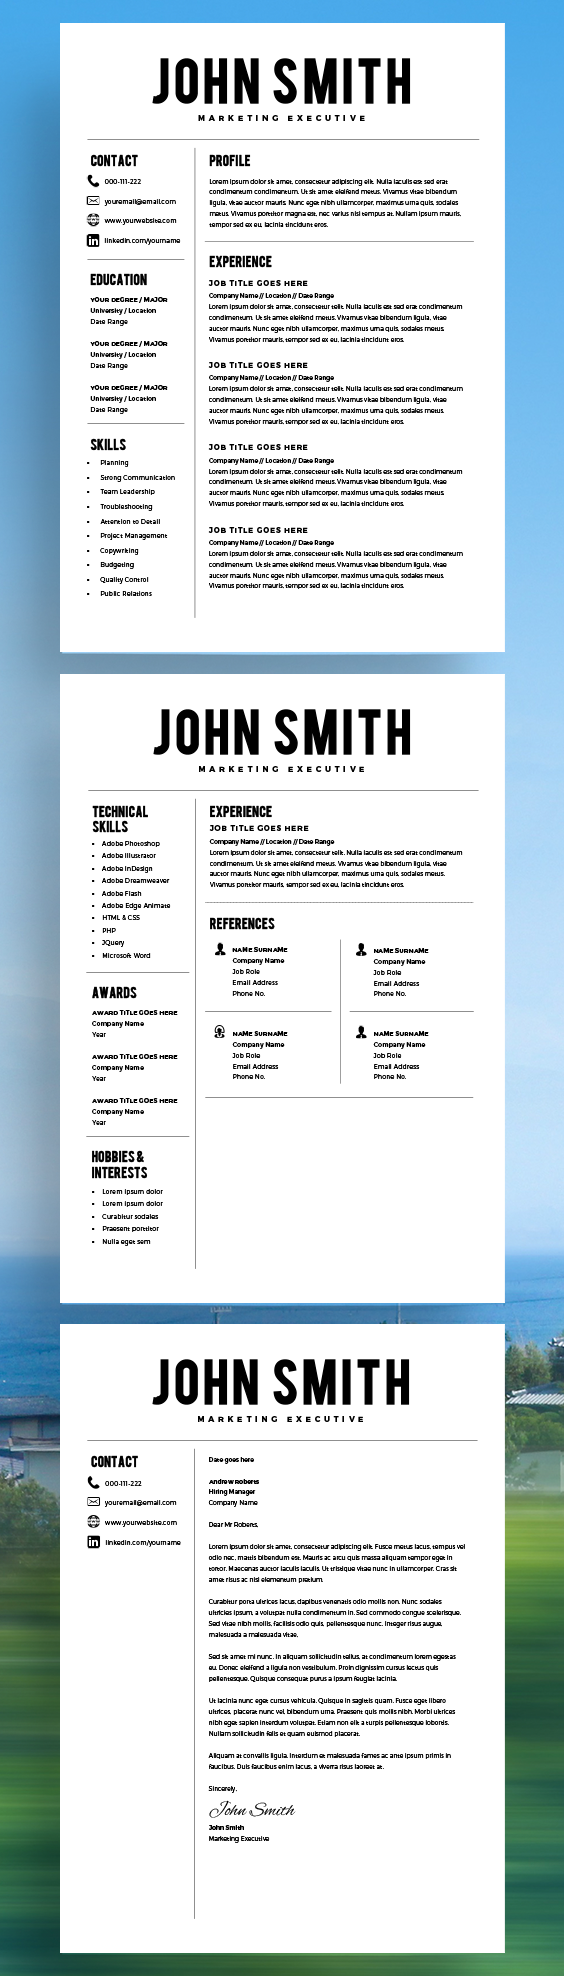 resume template resume builder cv template free cover letter ms word on - Resume Builder Cover Letter